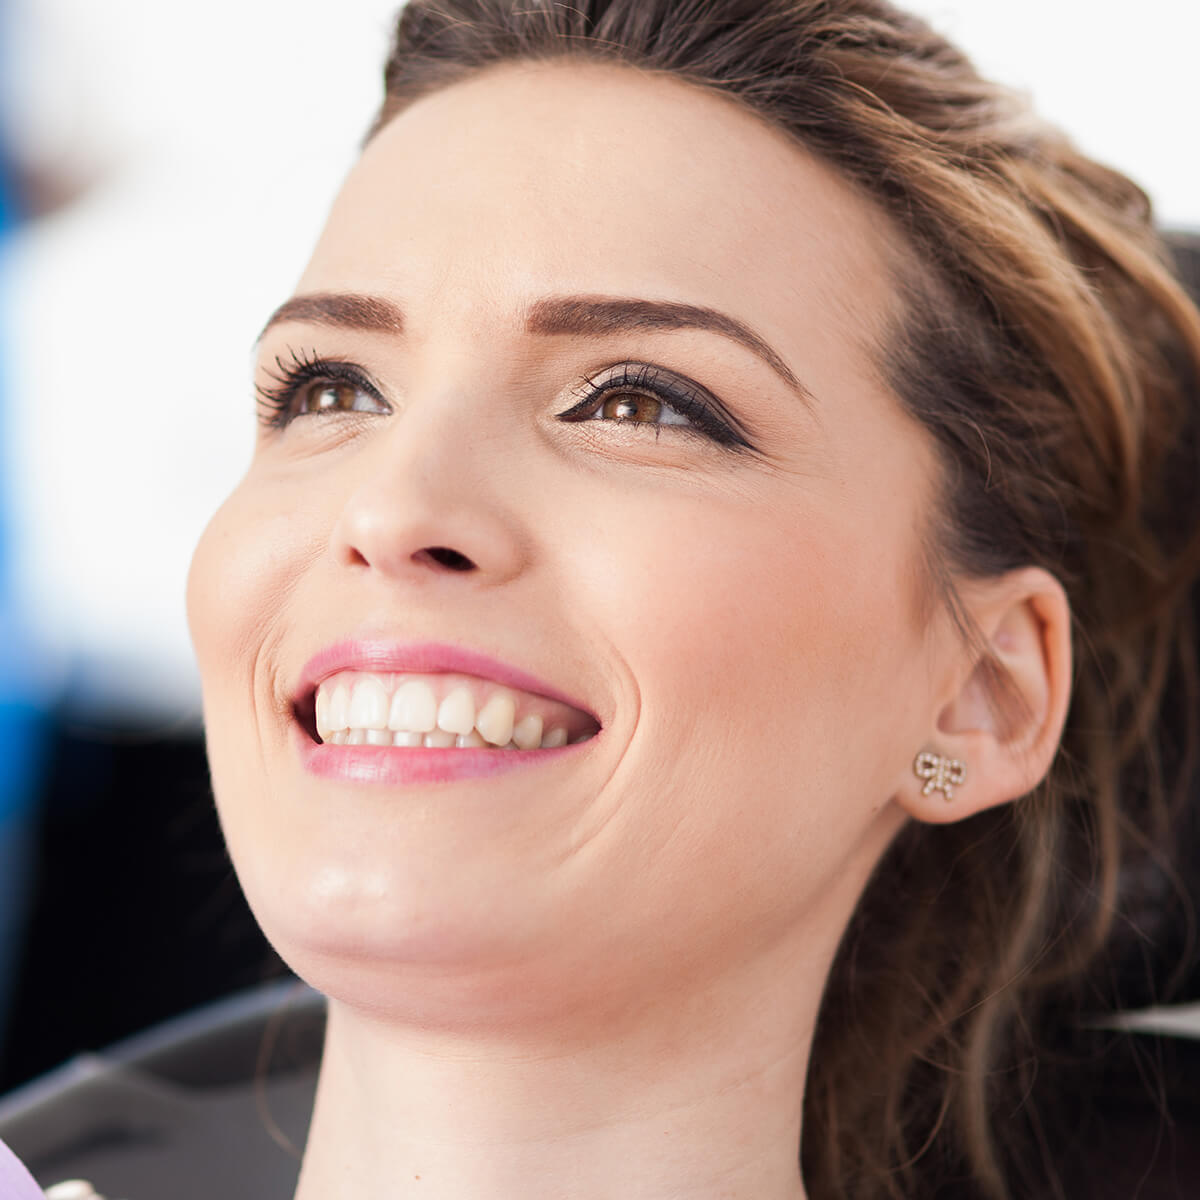 What is Teeth Gap Bonding, and does it have any Medical Benefits for El Dorado, AR Patients?